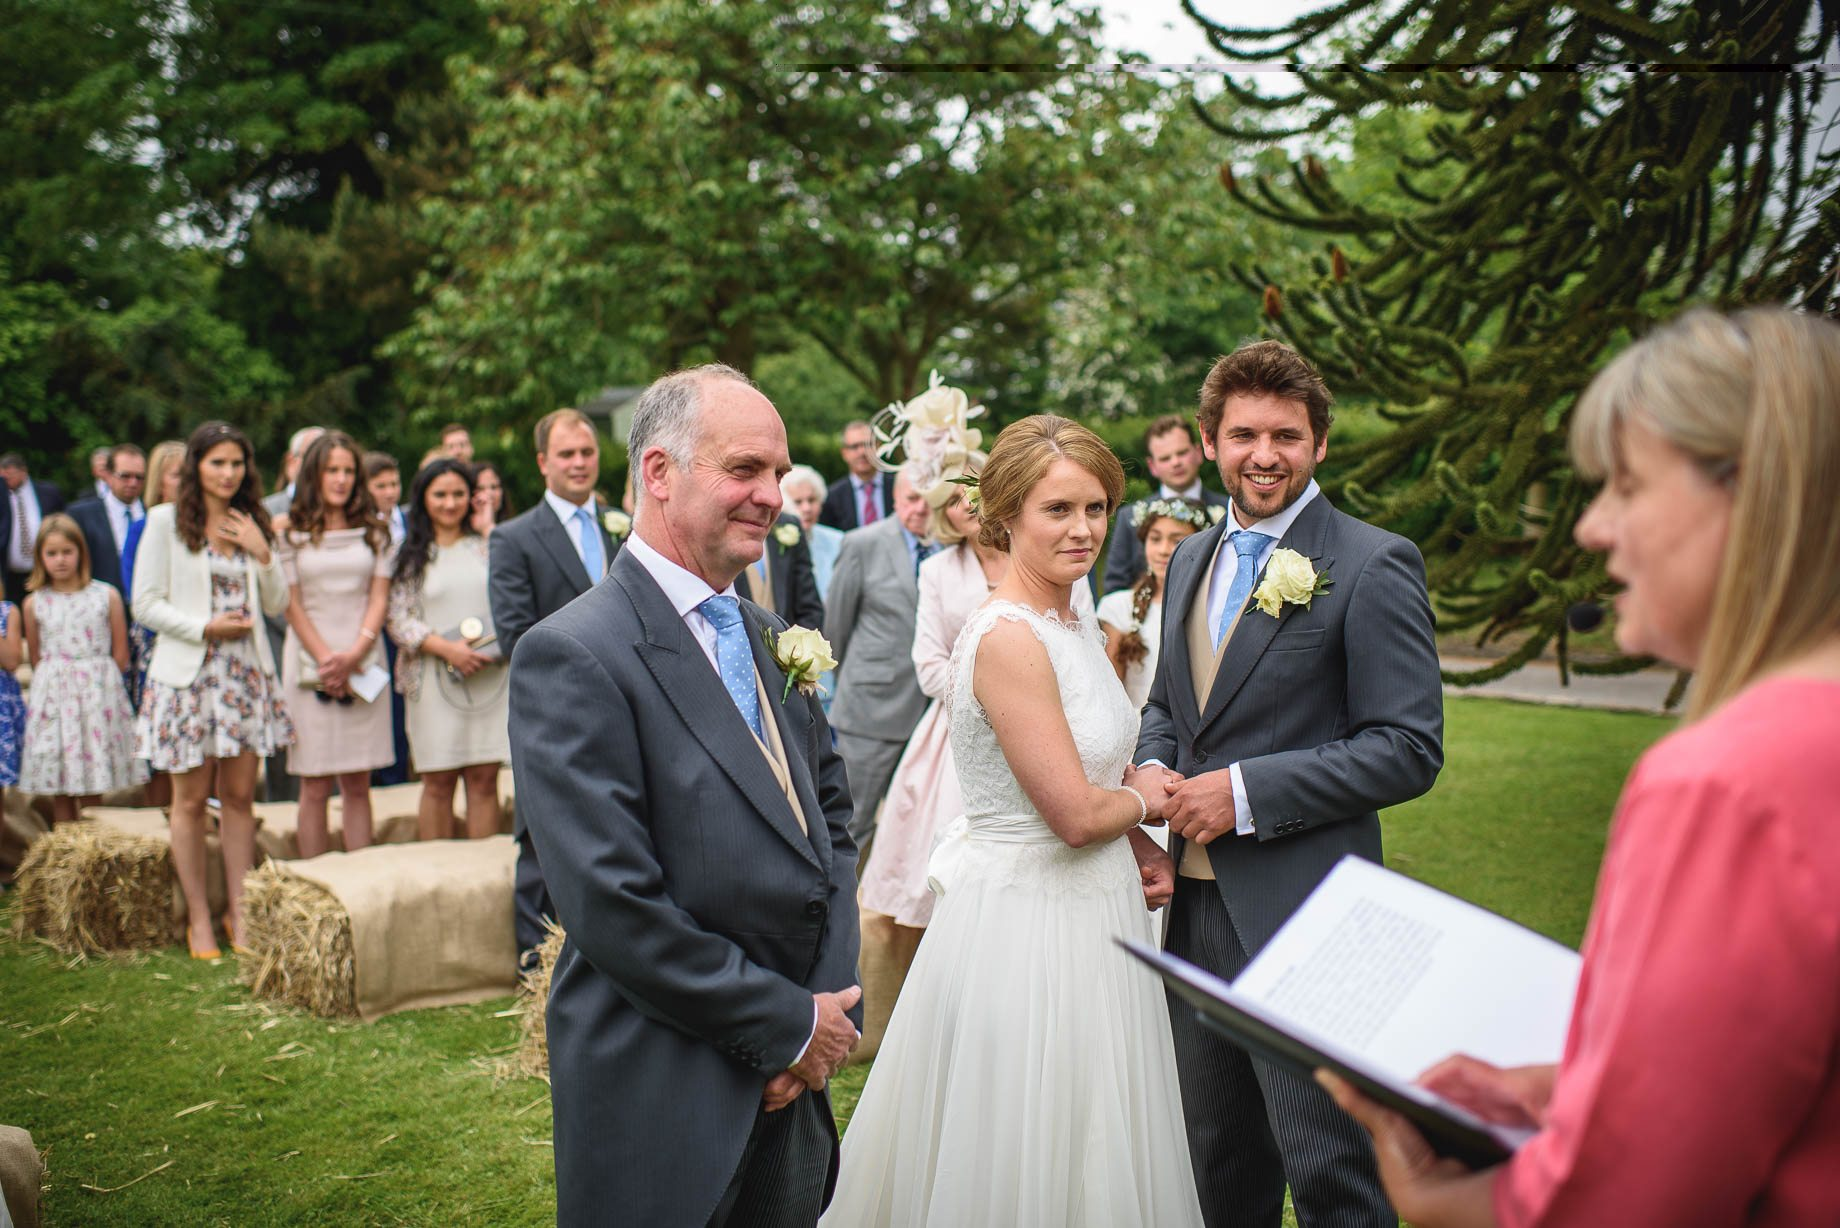 Wiltshire wedding photography by Guy Collier - Lucie and Matt (49 of 198)